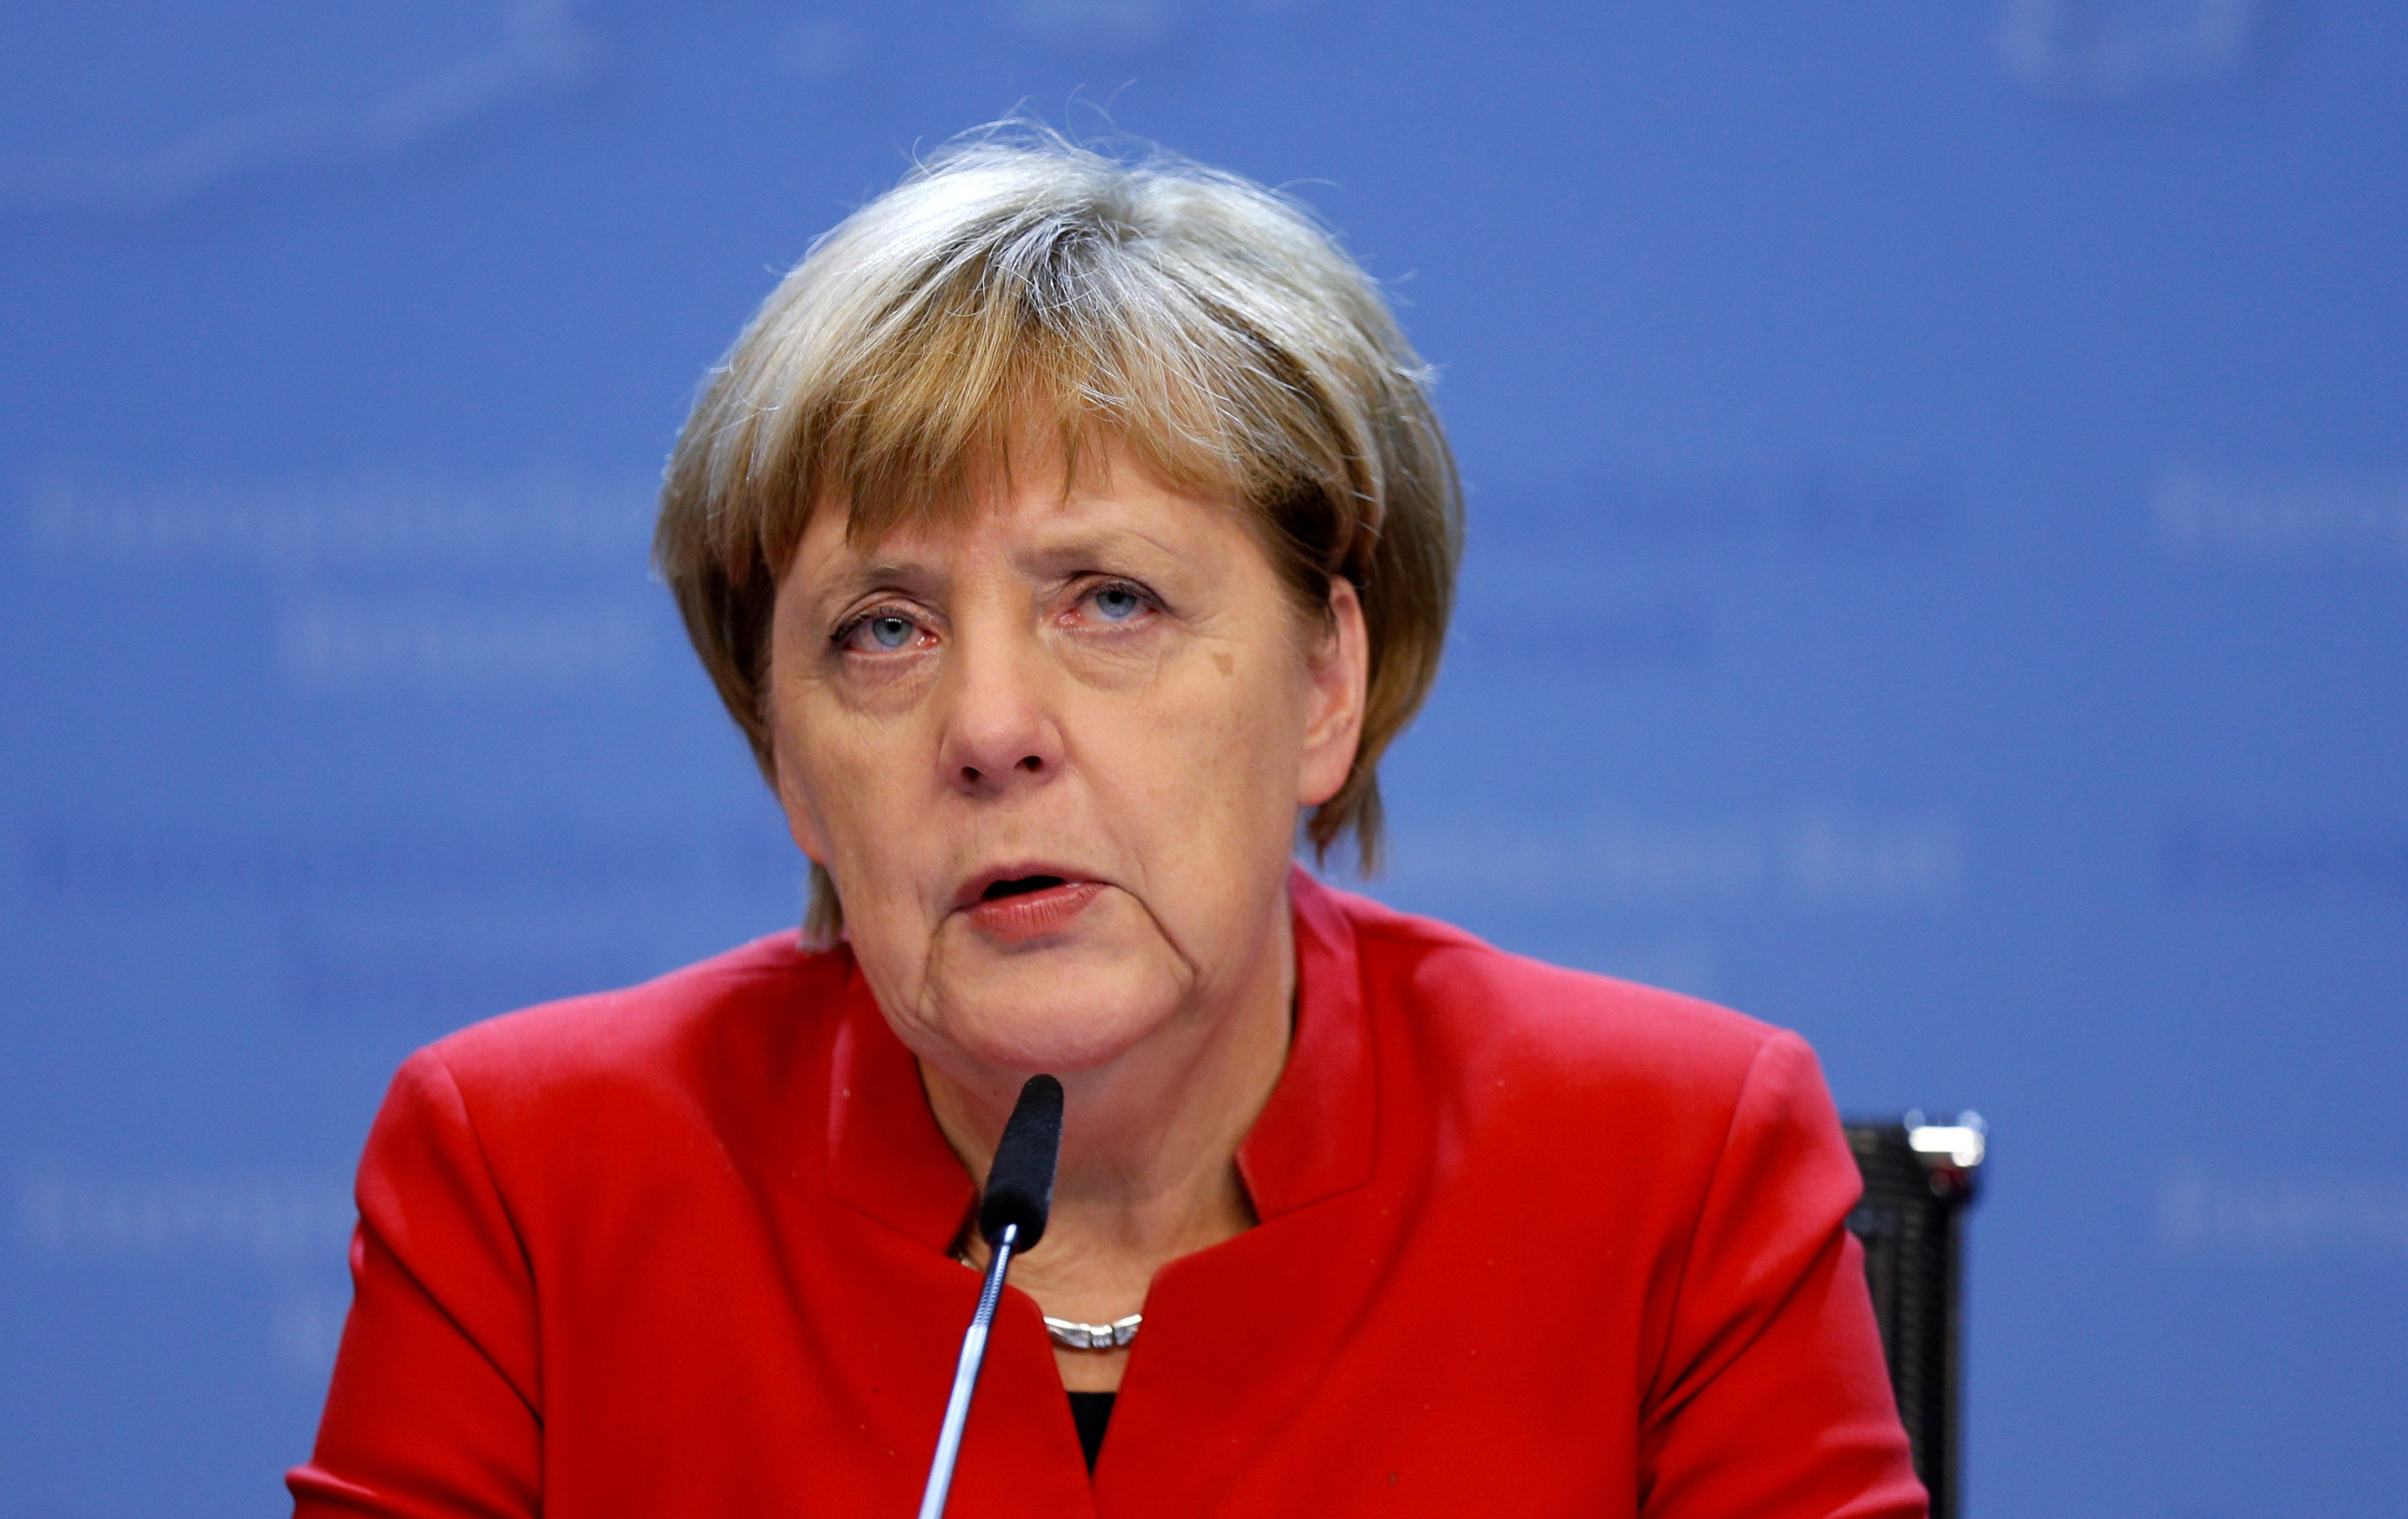 Angela Merkel Gives Trump The Biggest Not-So-Subtle Warning After His